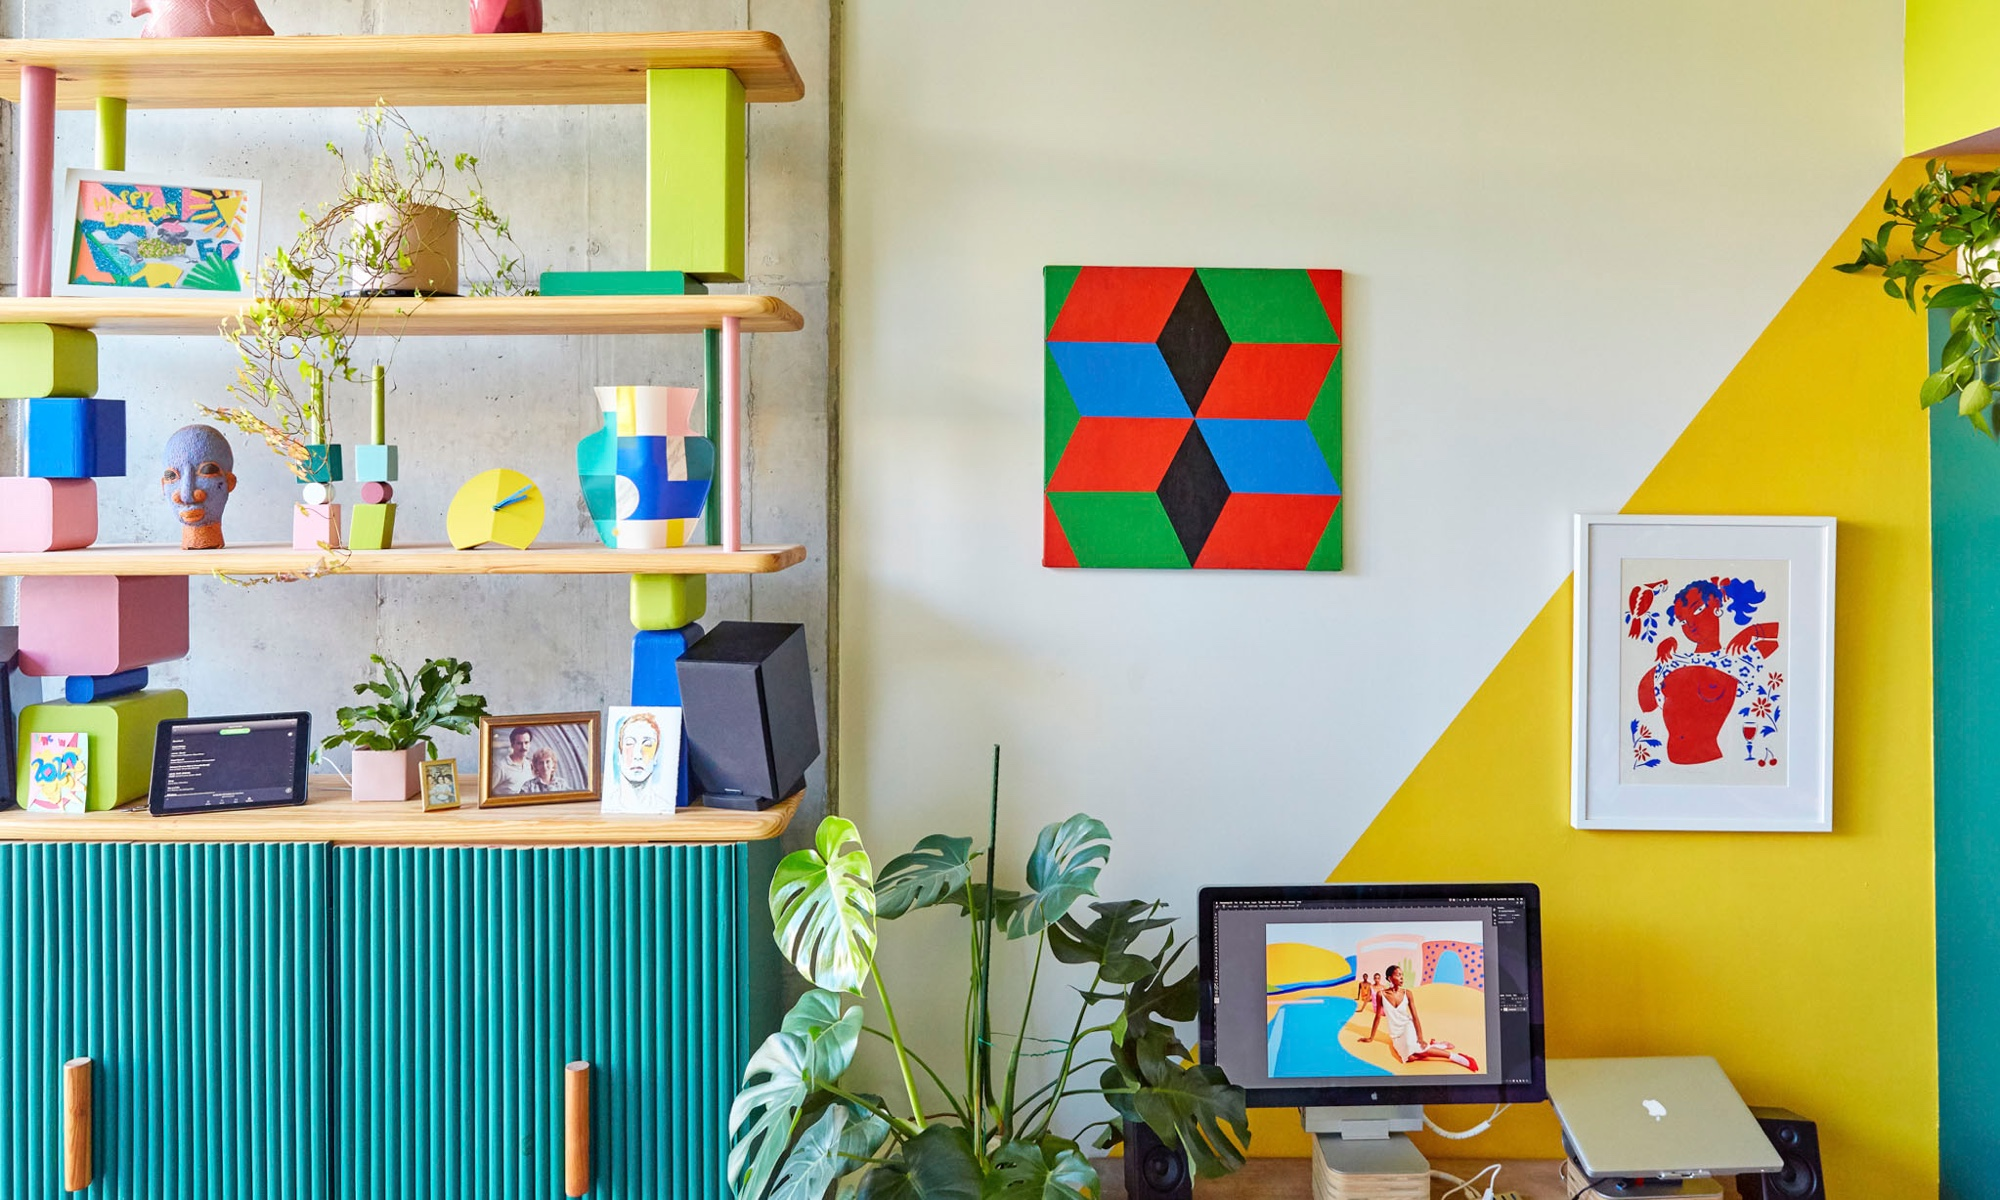 The home also serves as a workspace for the creative pair, and a cheerful yellow triangle defines the desk area.